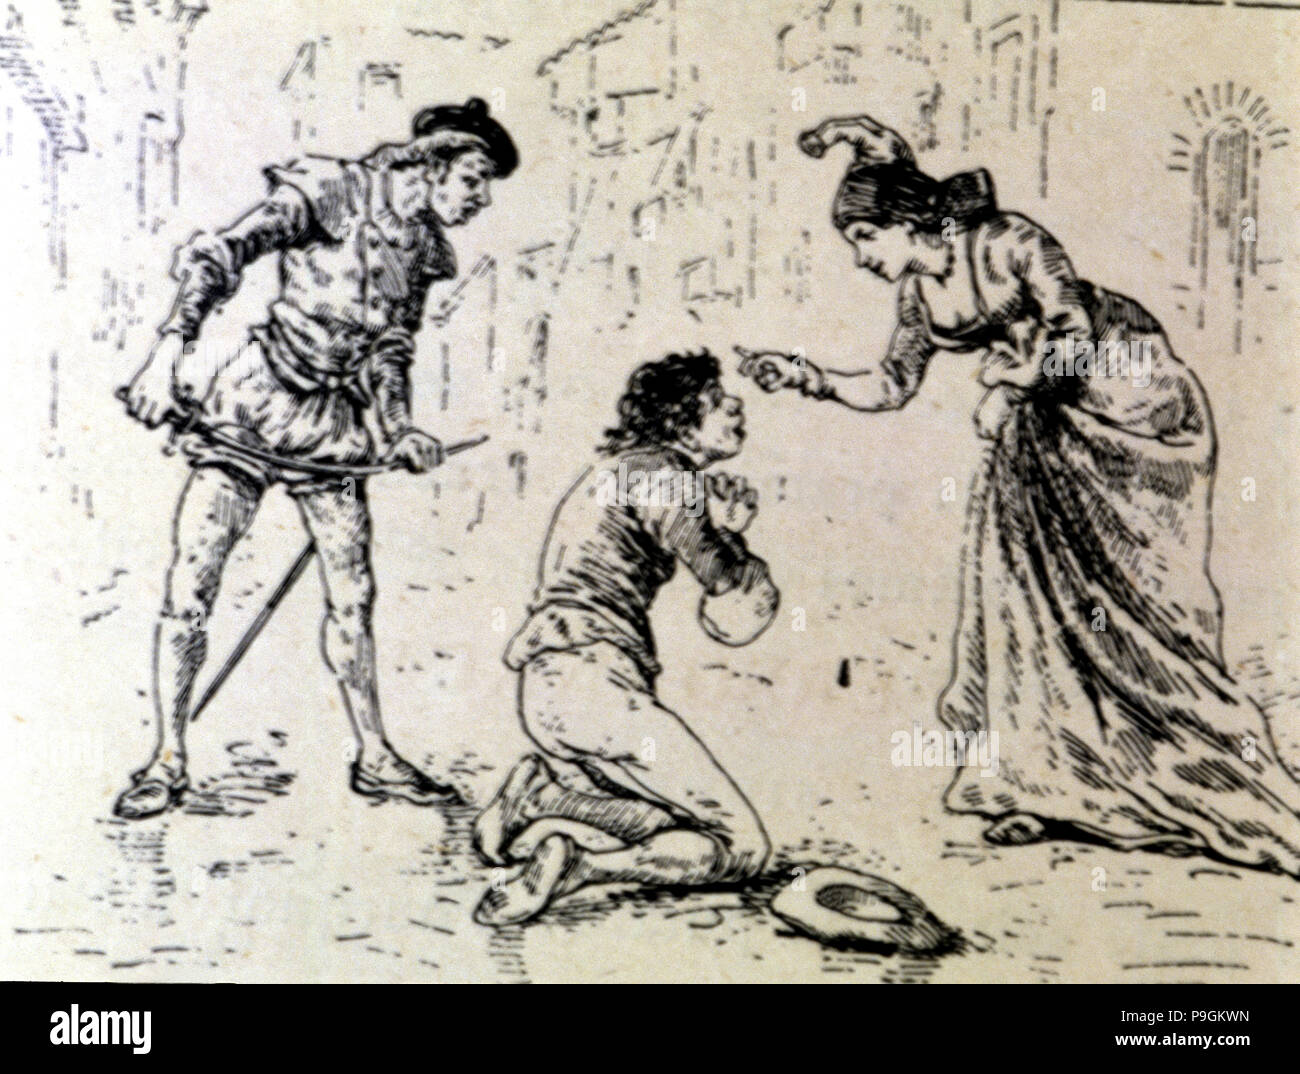 Engraving, a poor before a lady in an edition of 'La Comedie Espagnole' by Lope de Rueda, 1883. - Stock Image